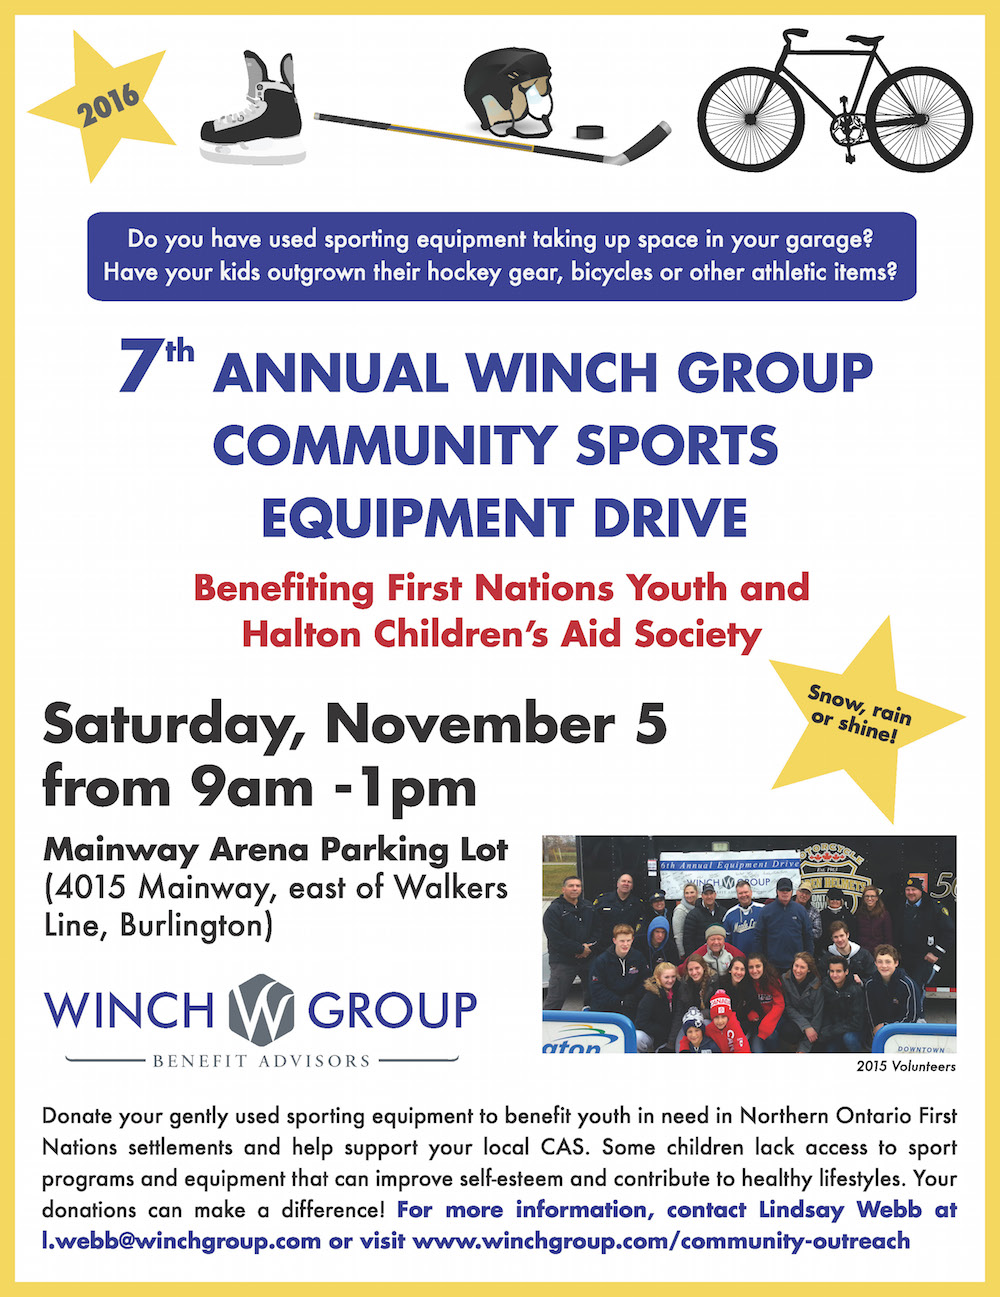 2016-Winch-Equipment-Drive-Flyer.jpg